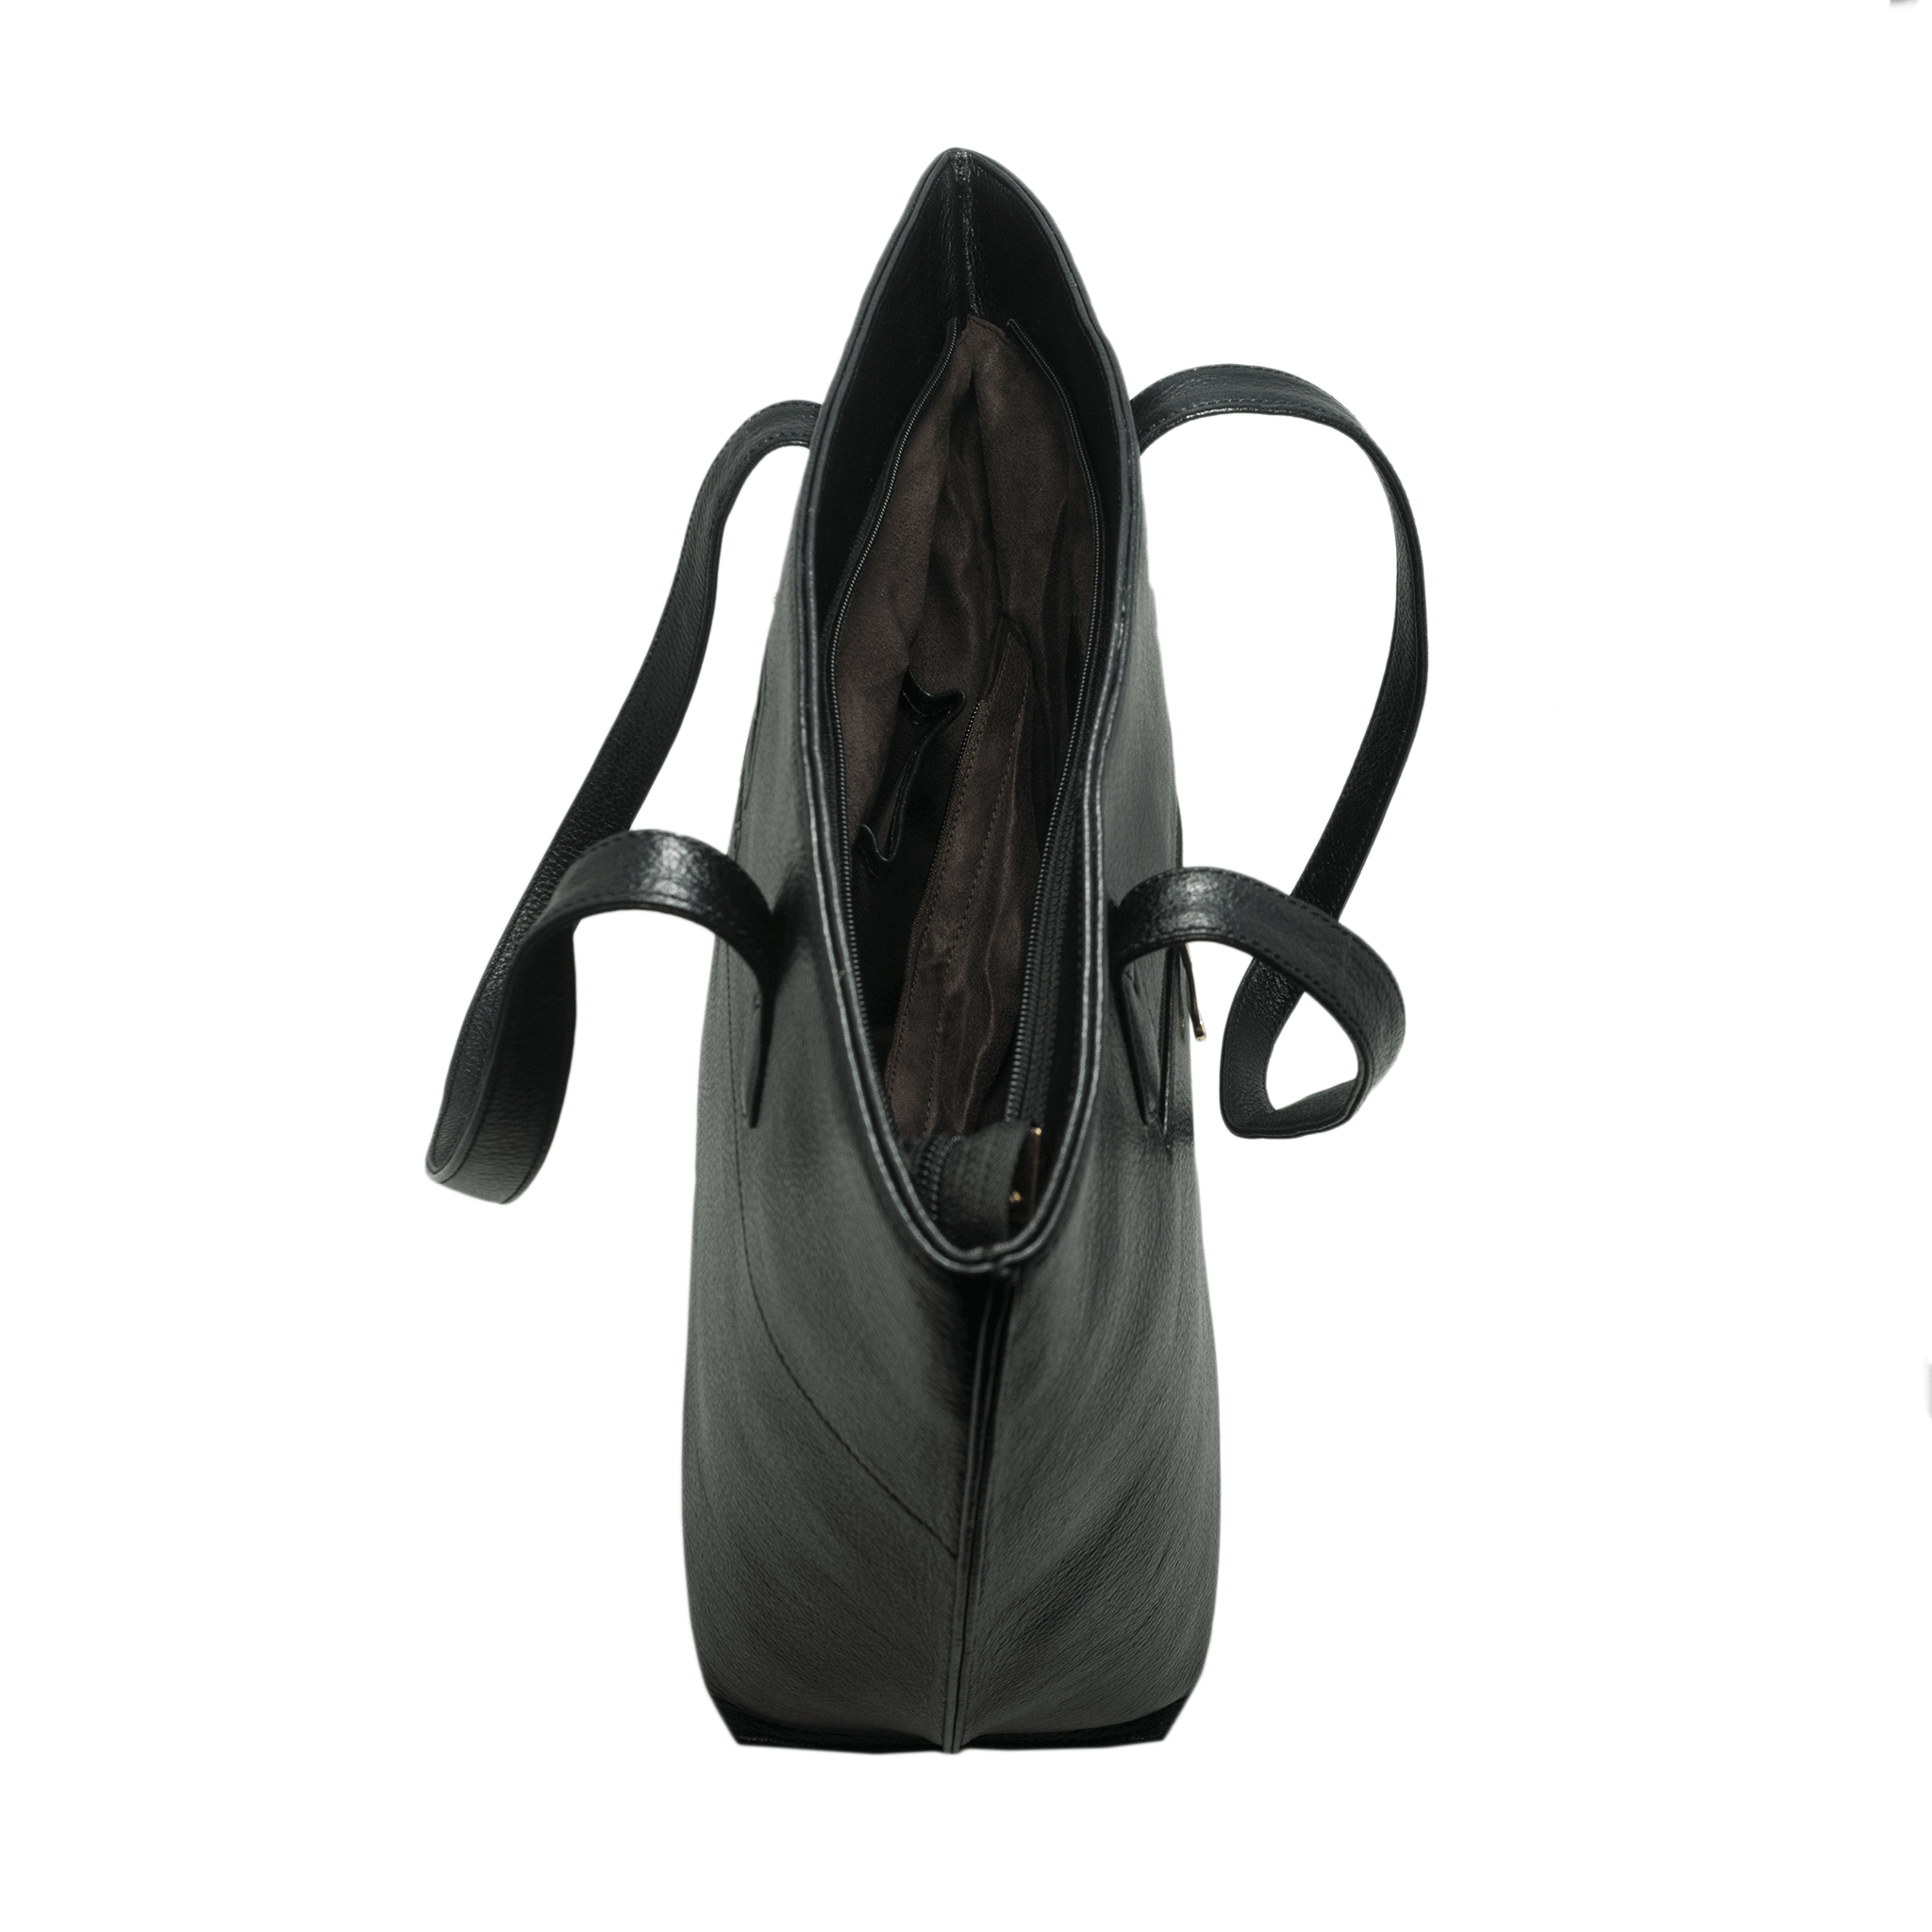 Handcrafted genuine black leather shoulder bag top view with open zip pocket for women by RELUKS